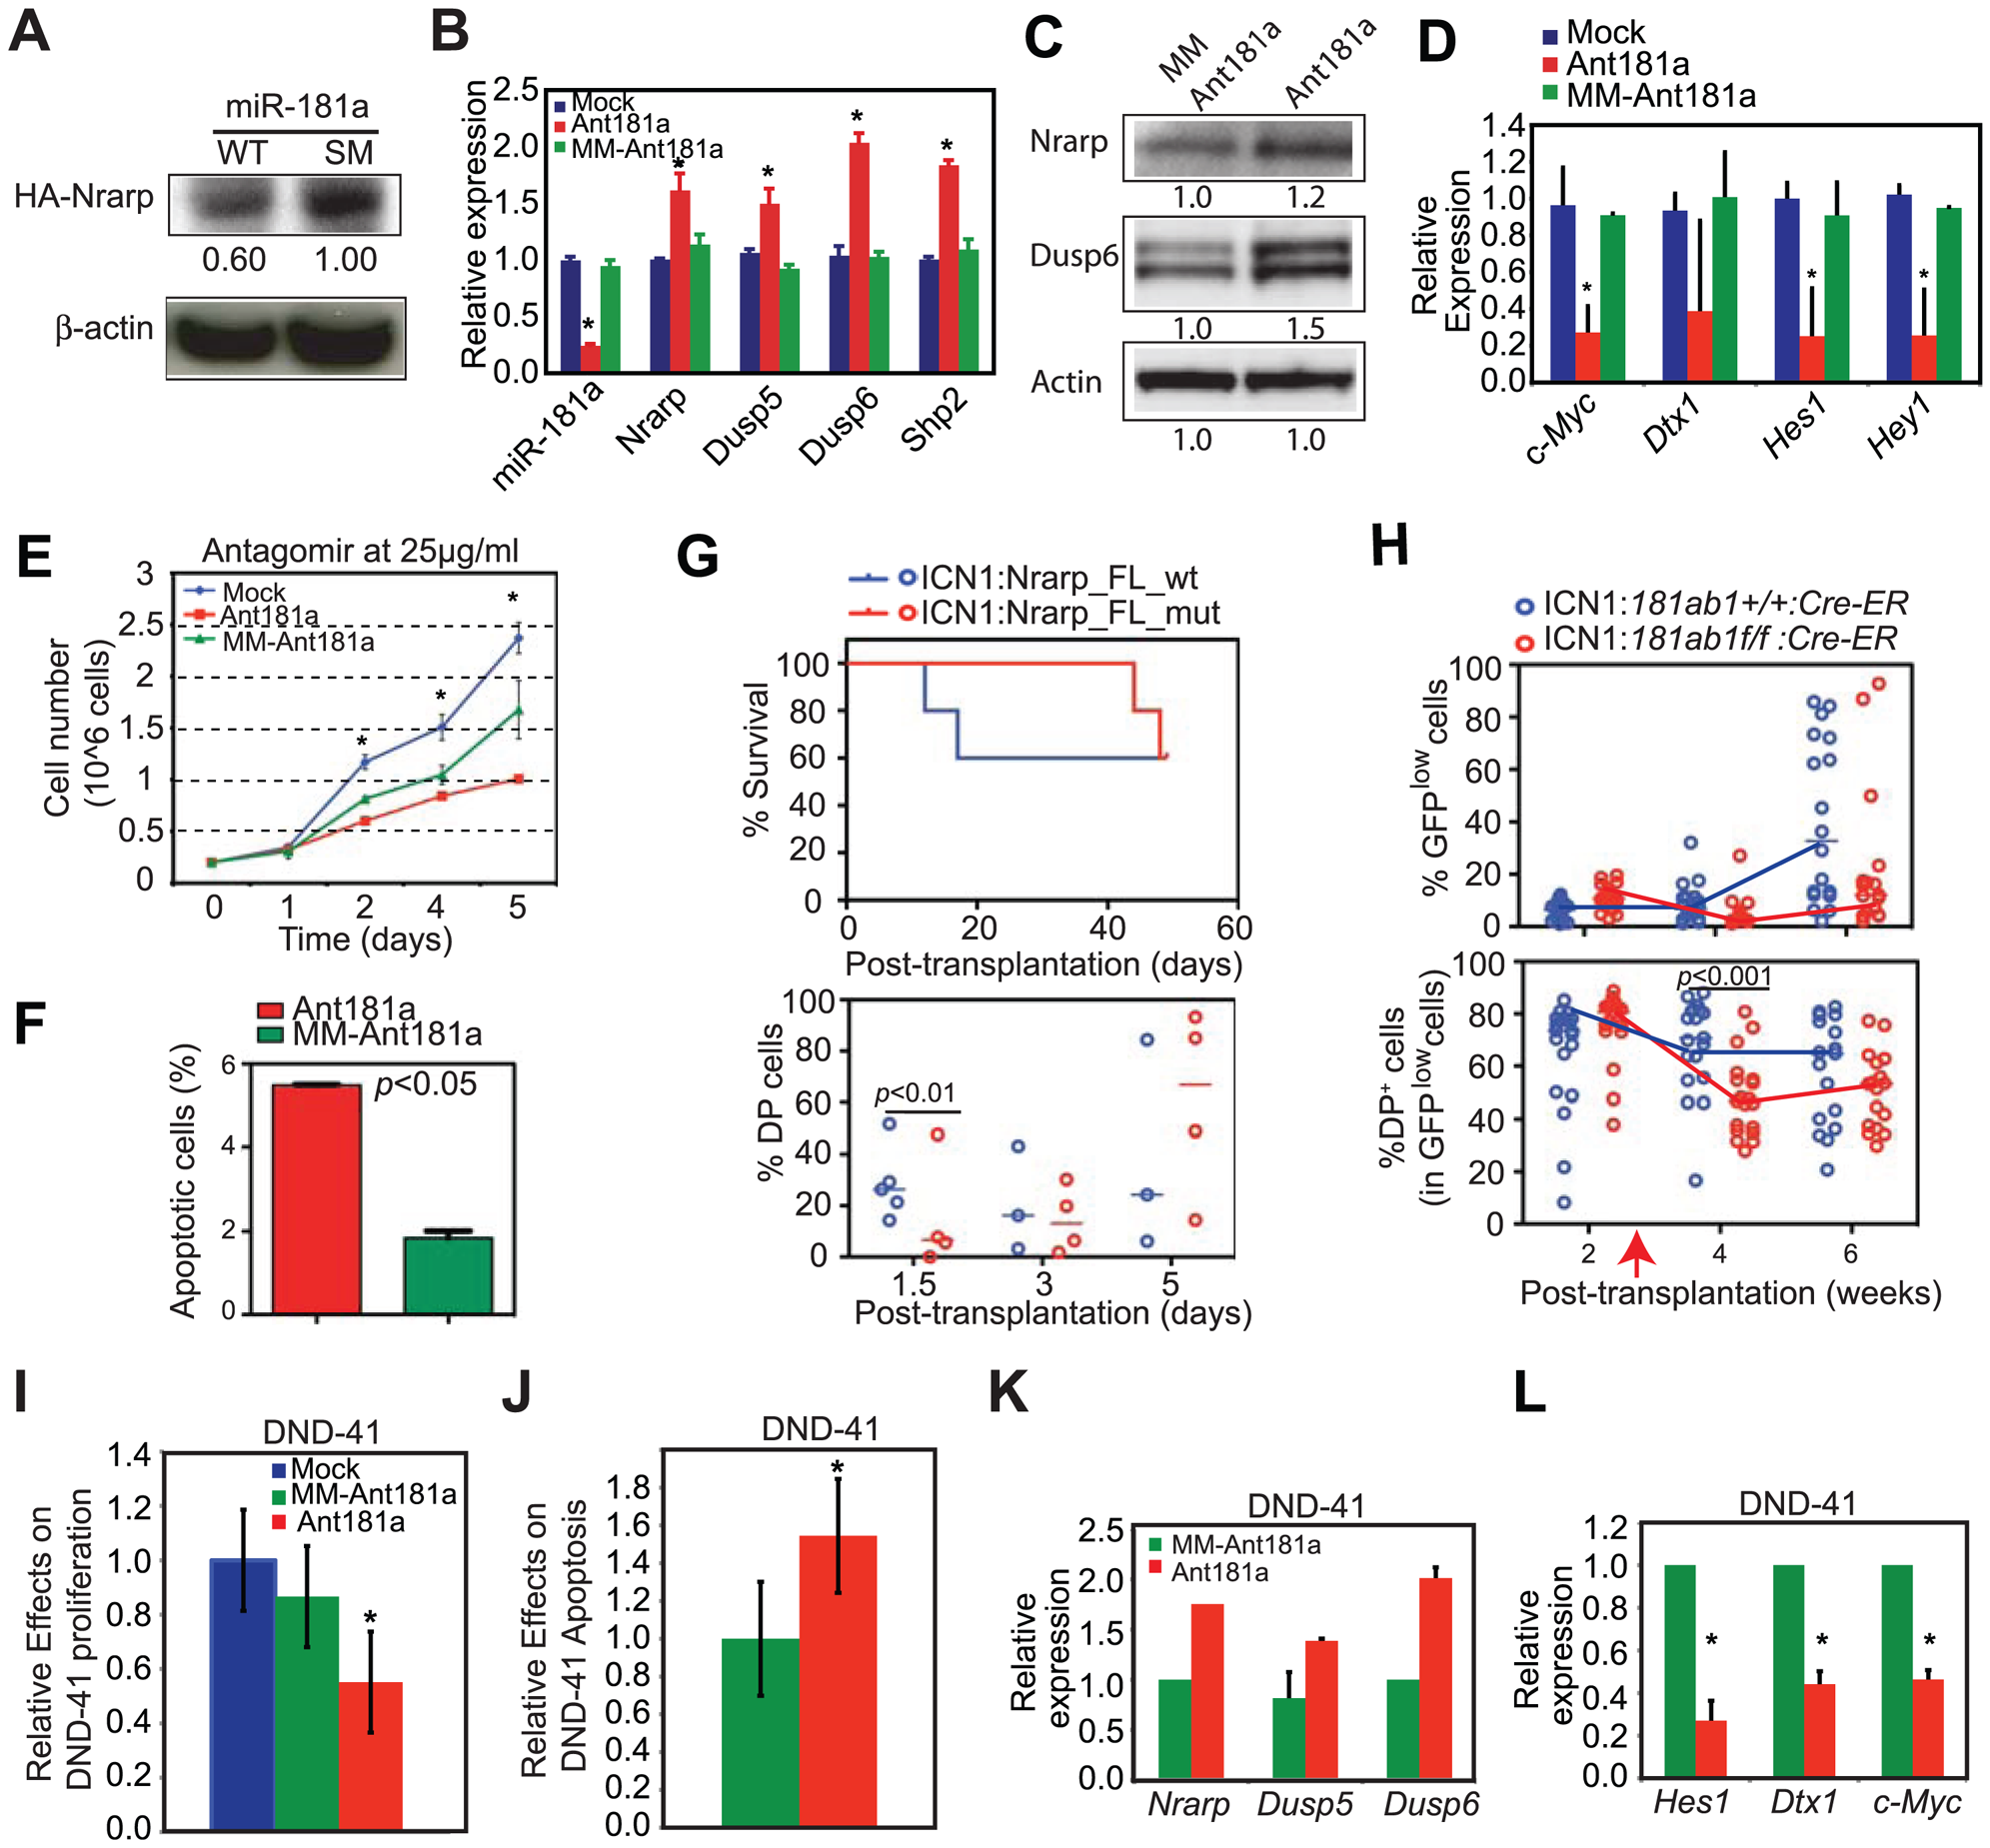 Targets of miR-181a in T-ALL cells and the effects of miR-181a inhibition in T-ALL cells.